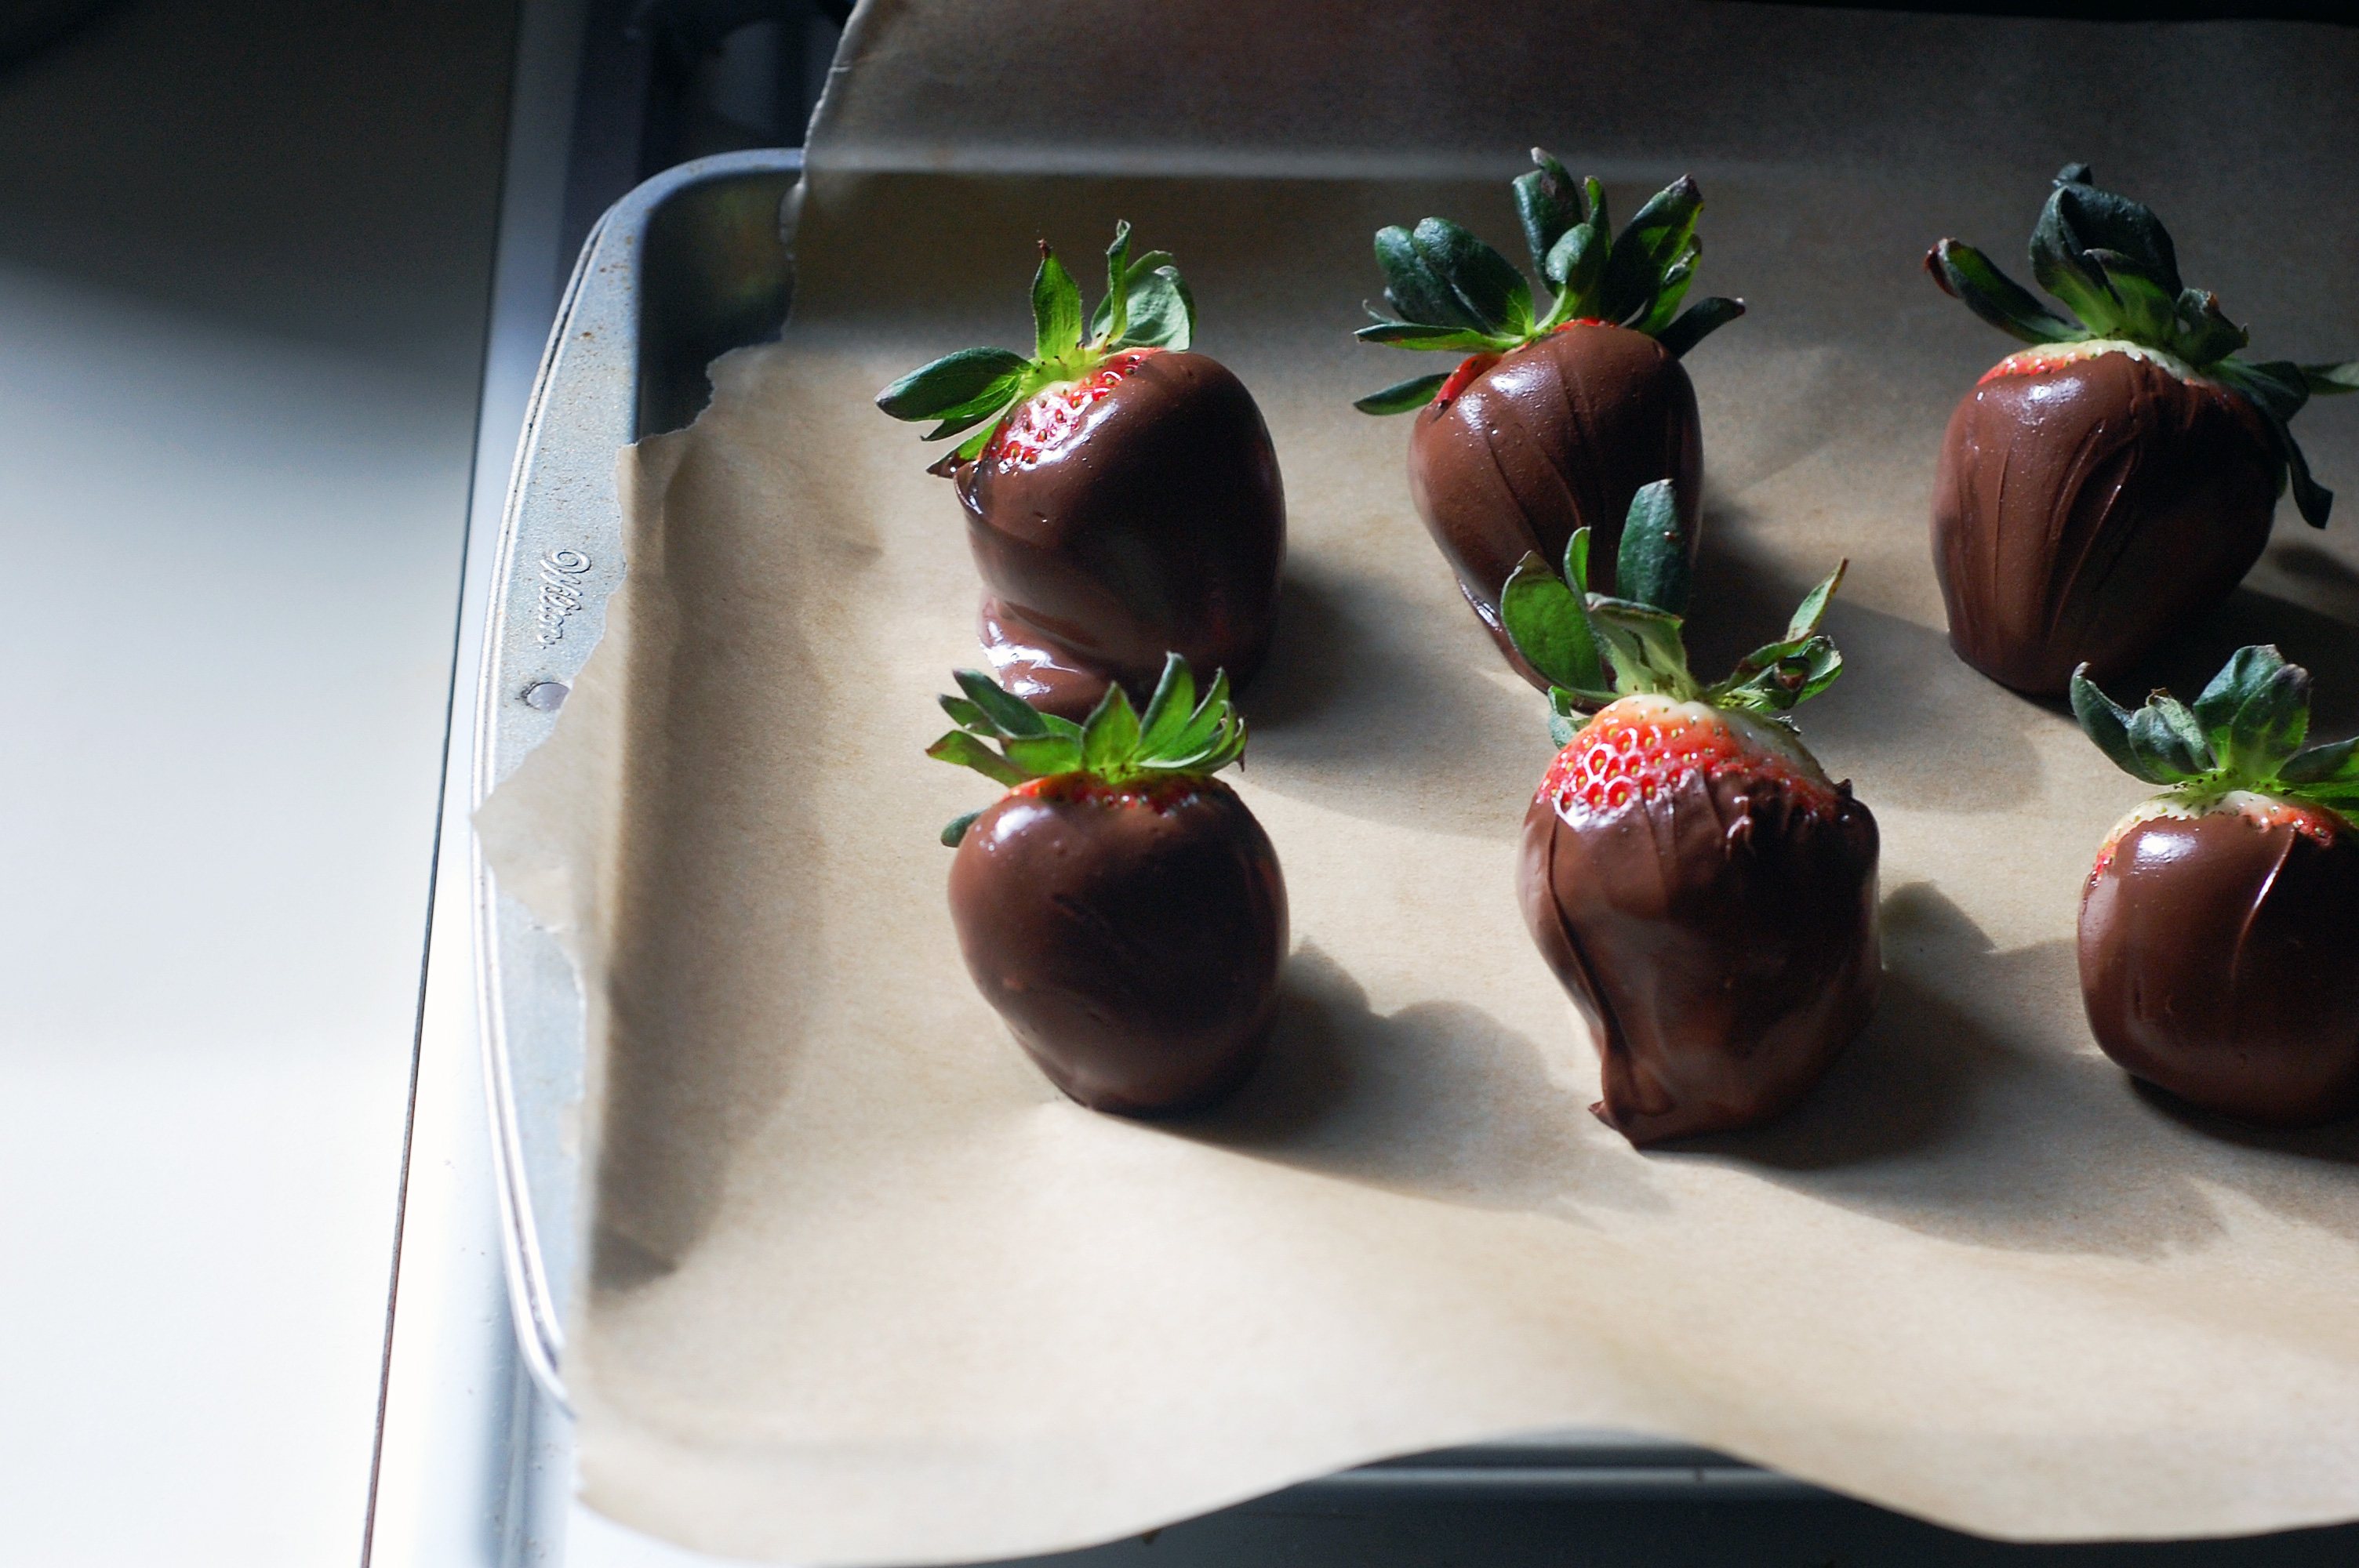 Transfer the Strawberries